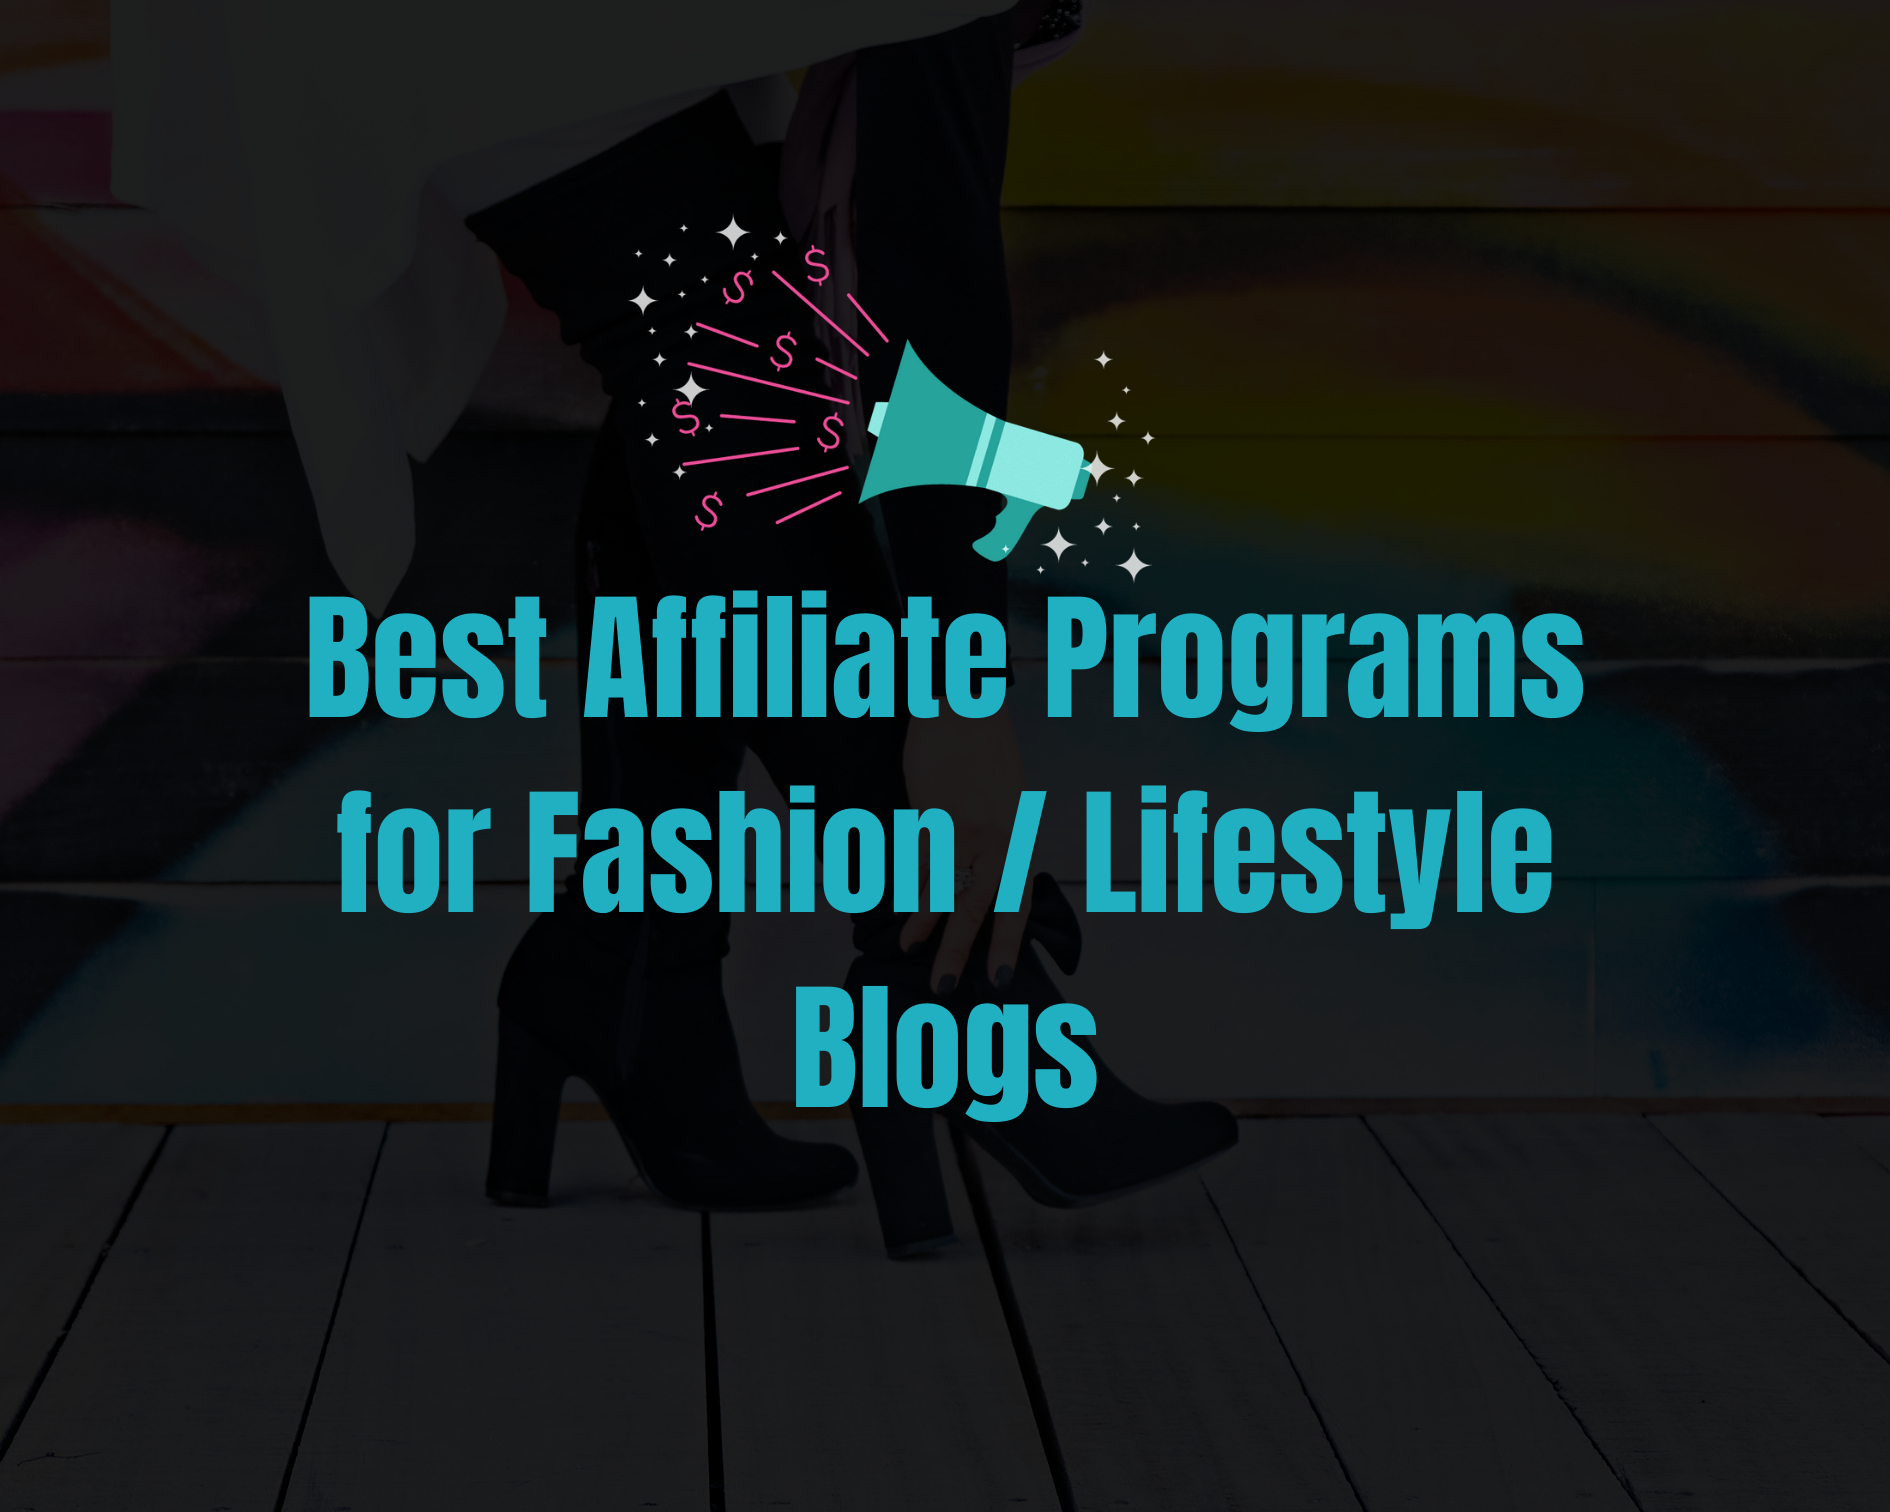 5 Best Affiliate Programs for Fashion / Lifestyle Blogs in 2020